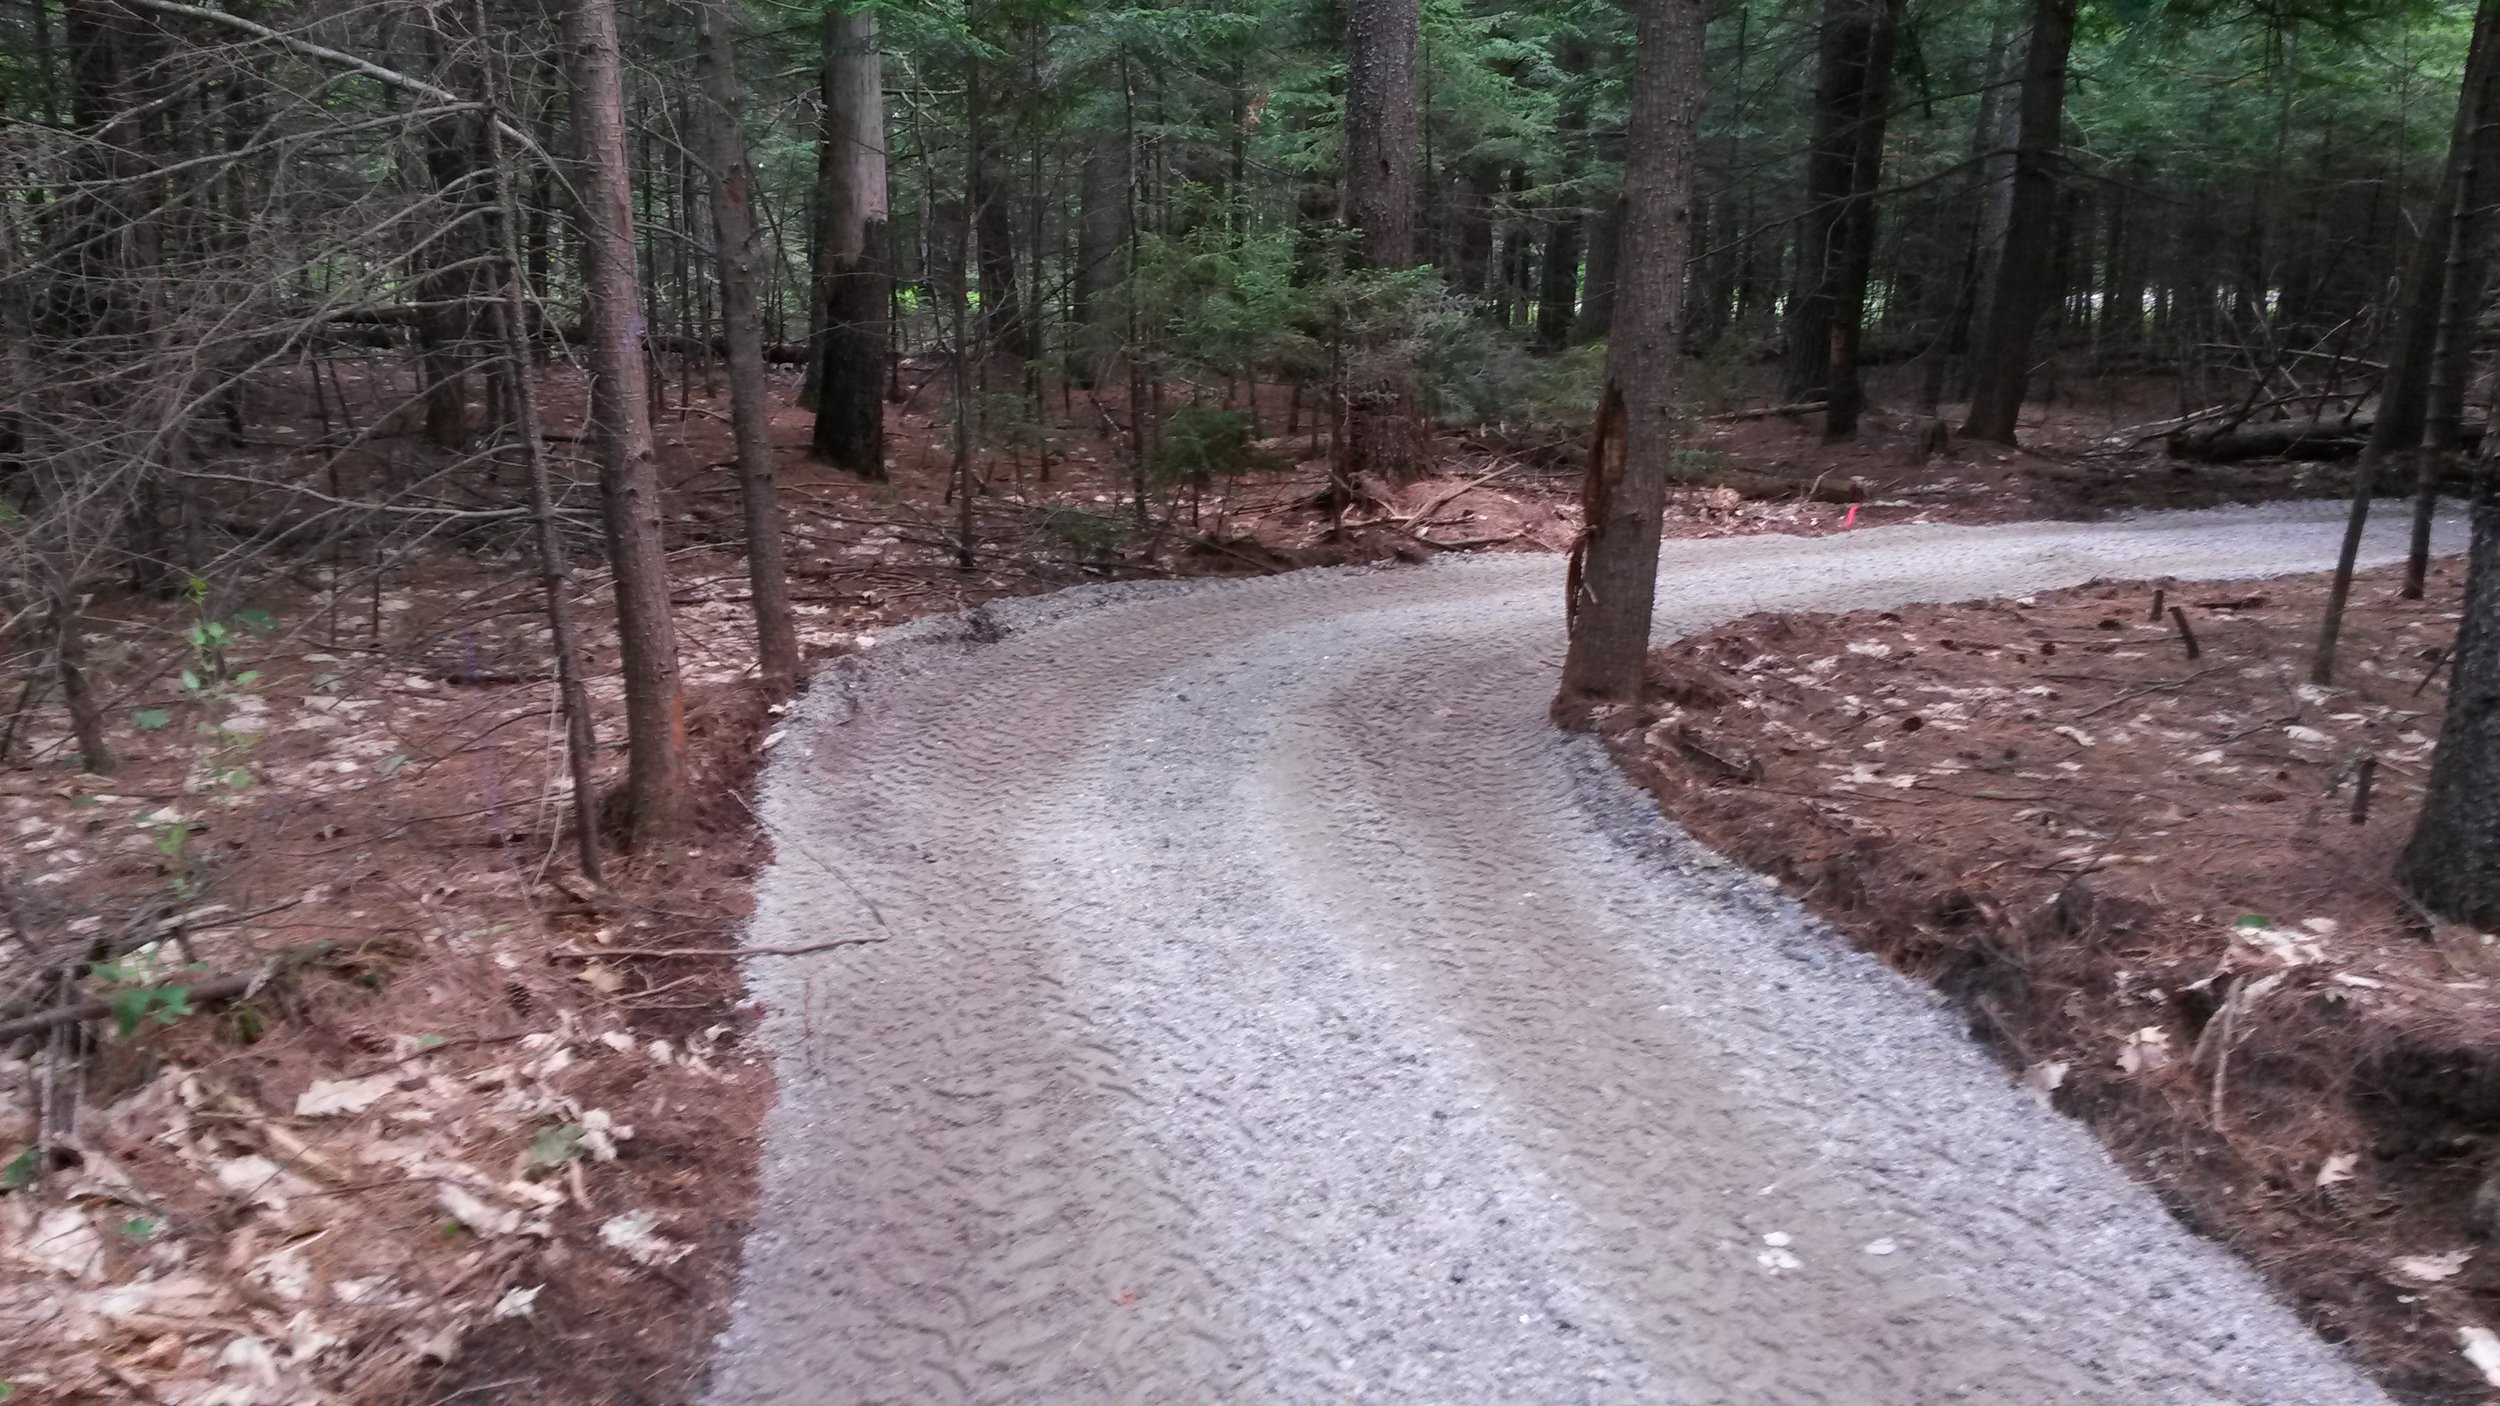 Valentine Farm Trail - EASY - This 1.2 mile universally accessible trail has a crushed gravel surface and meanders through woods and alongside fields offering views of the Androscoggin River. Perfect for people of all ages and abilities.